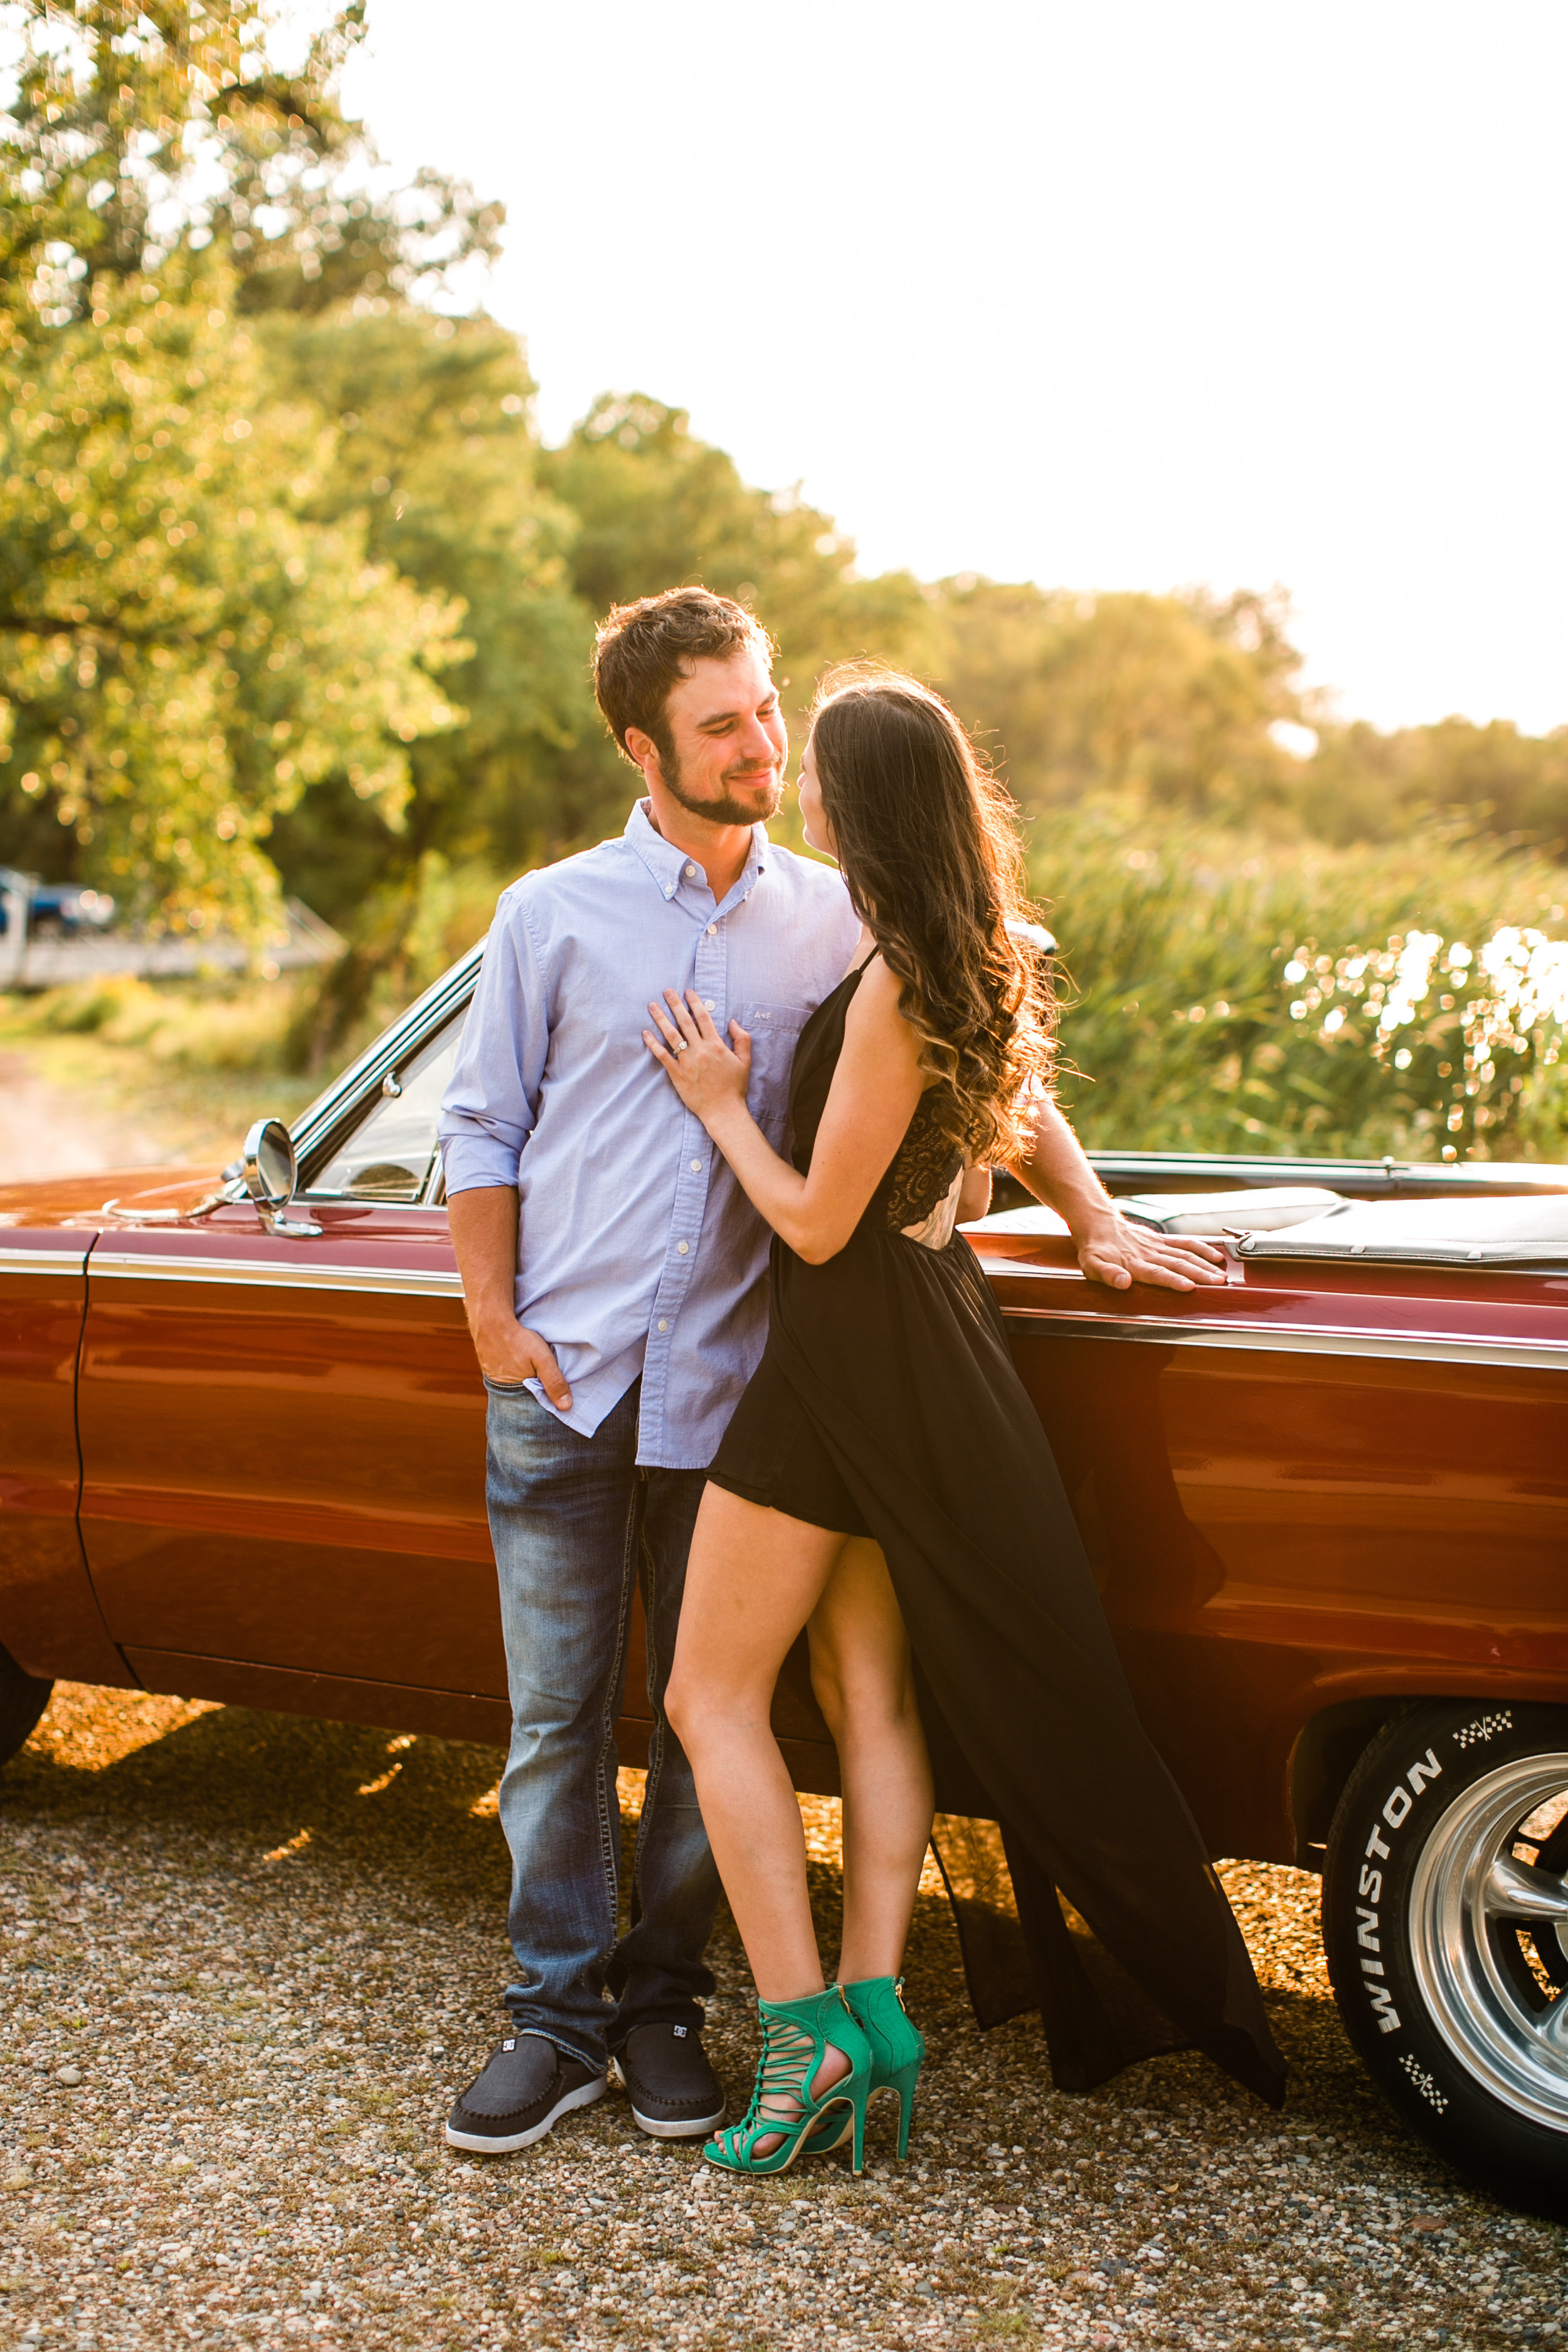 formal dress and vintage car styled engagement photos iowa city